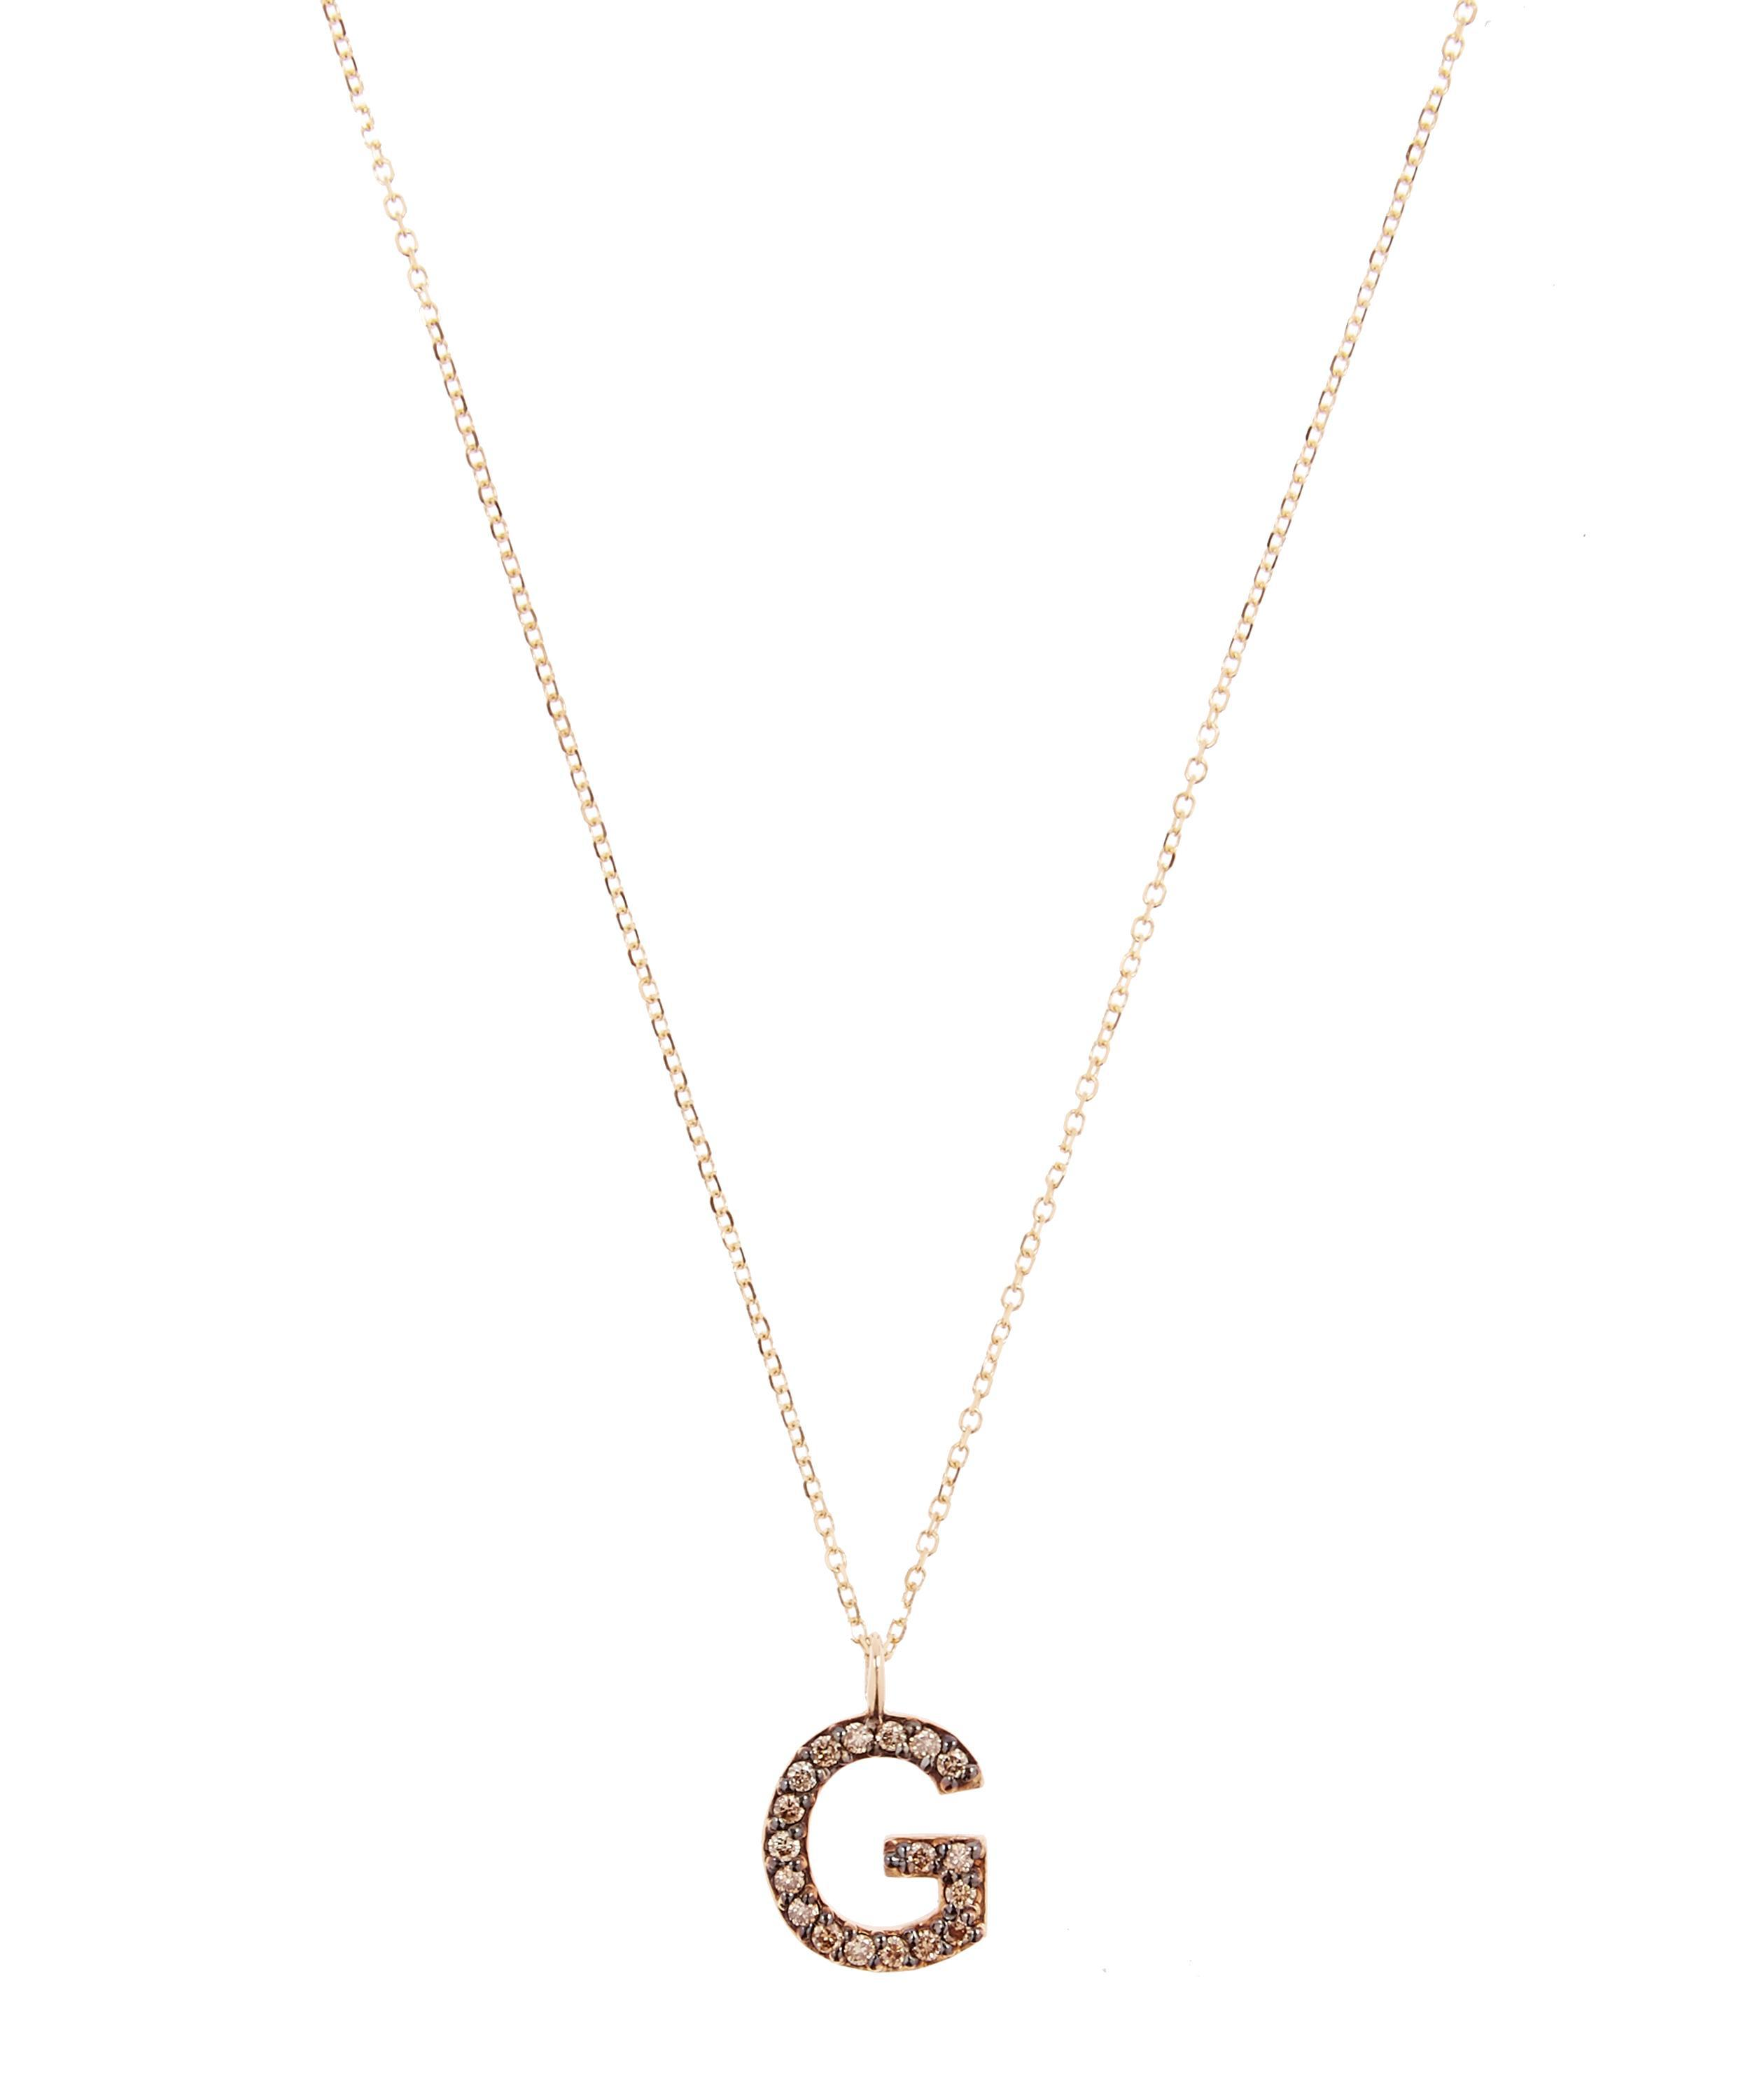 necklace gold letter gcg luxury twig alphabet s jewellry enchanted with g pendant website